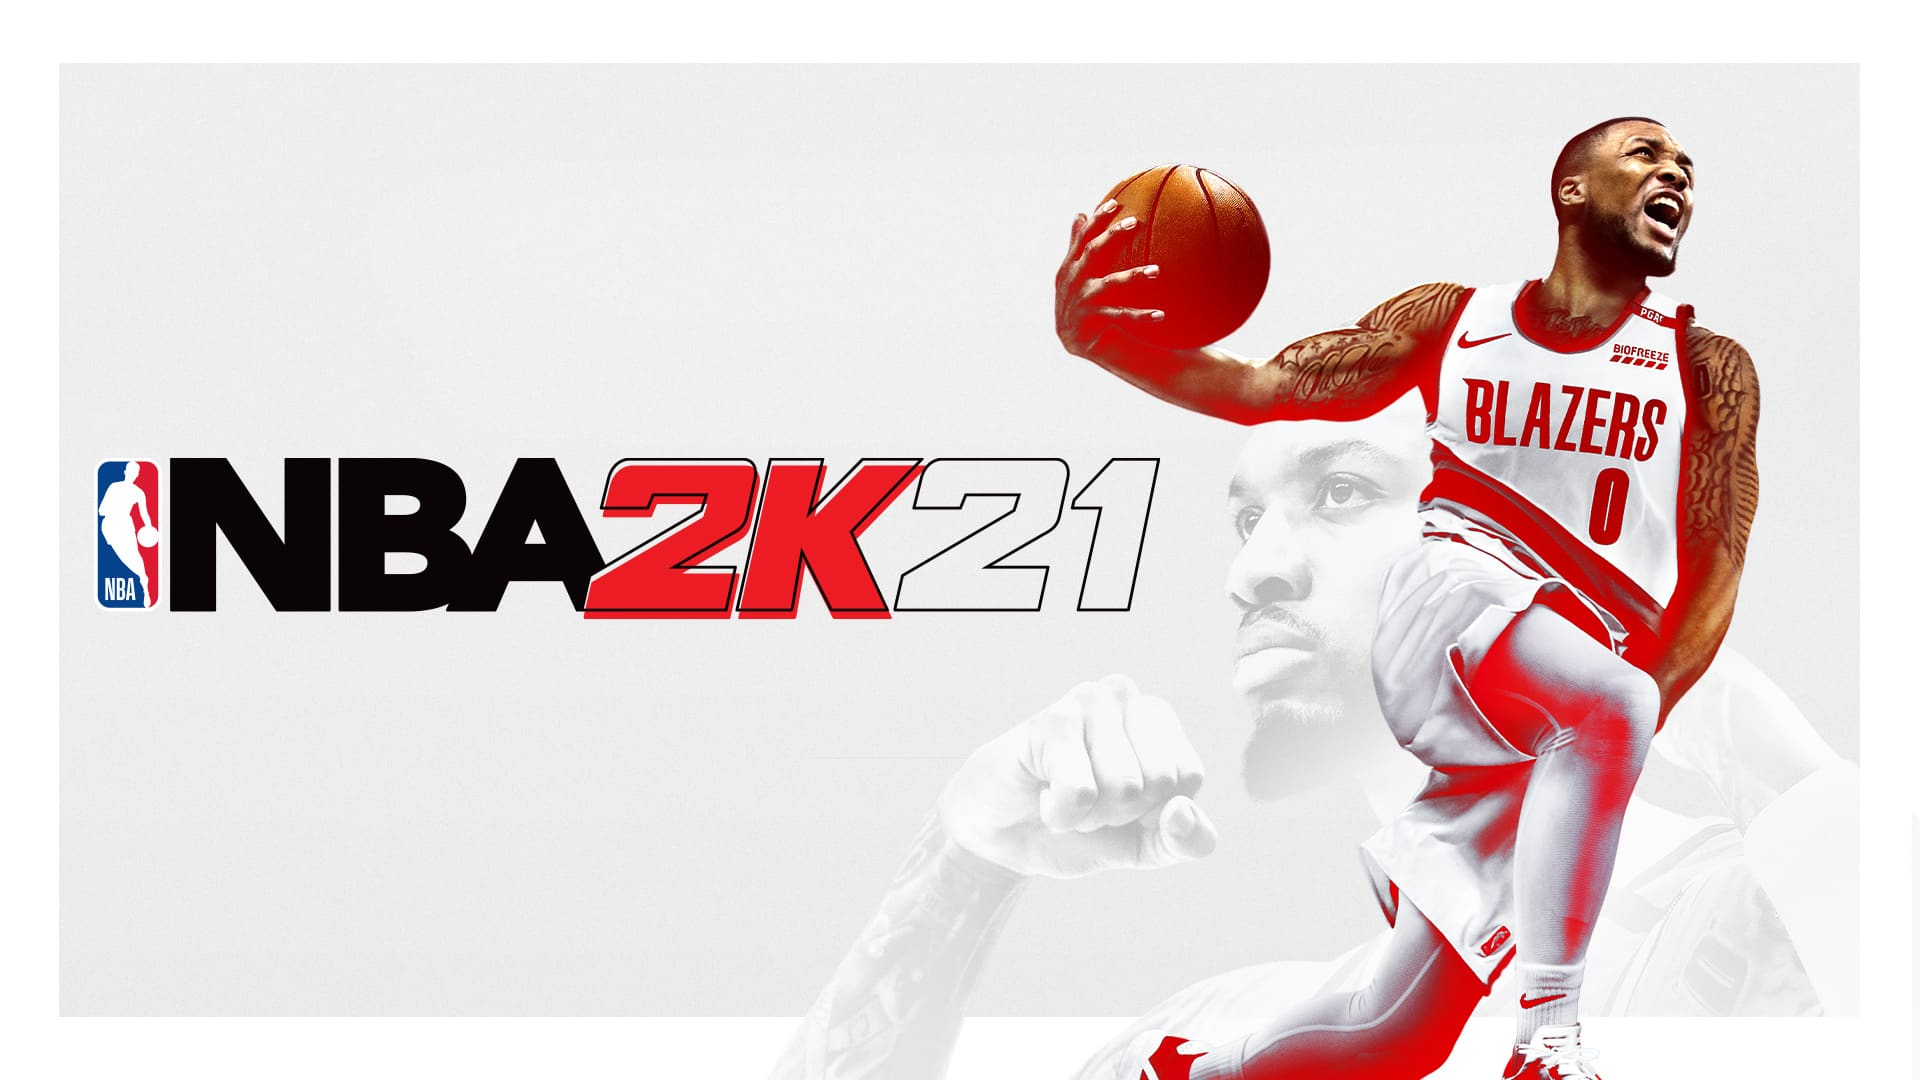 NBA 2K21 Gets Unskippable Ads Between Loading Screens - GLITCHED